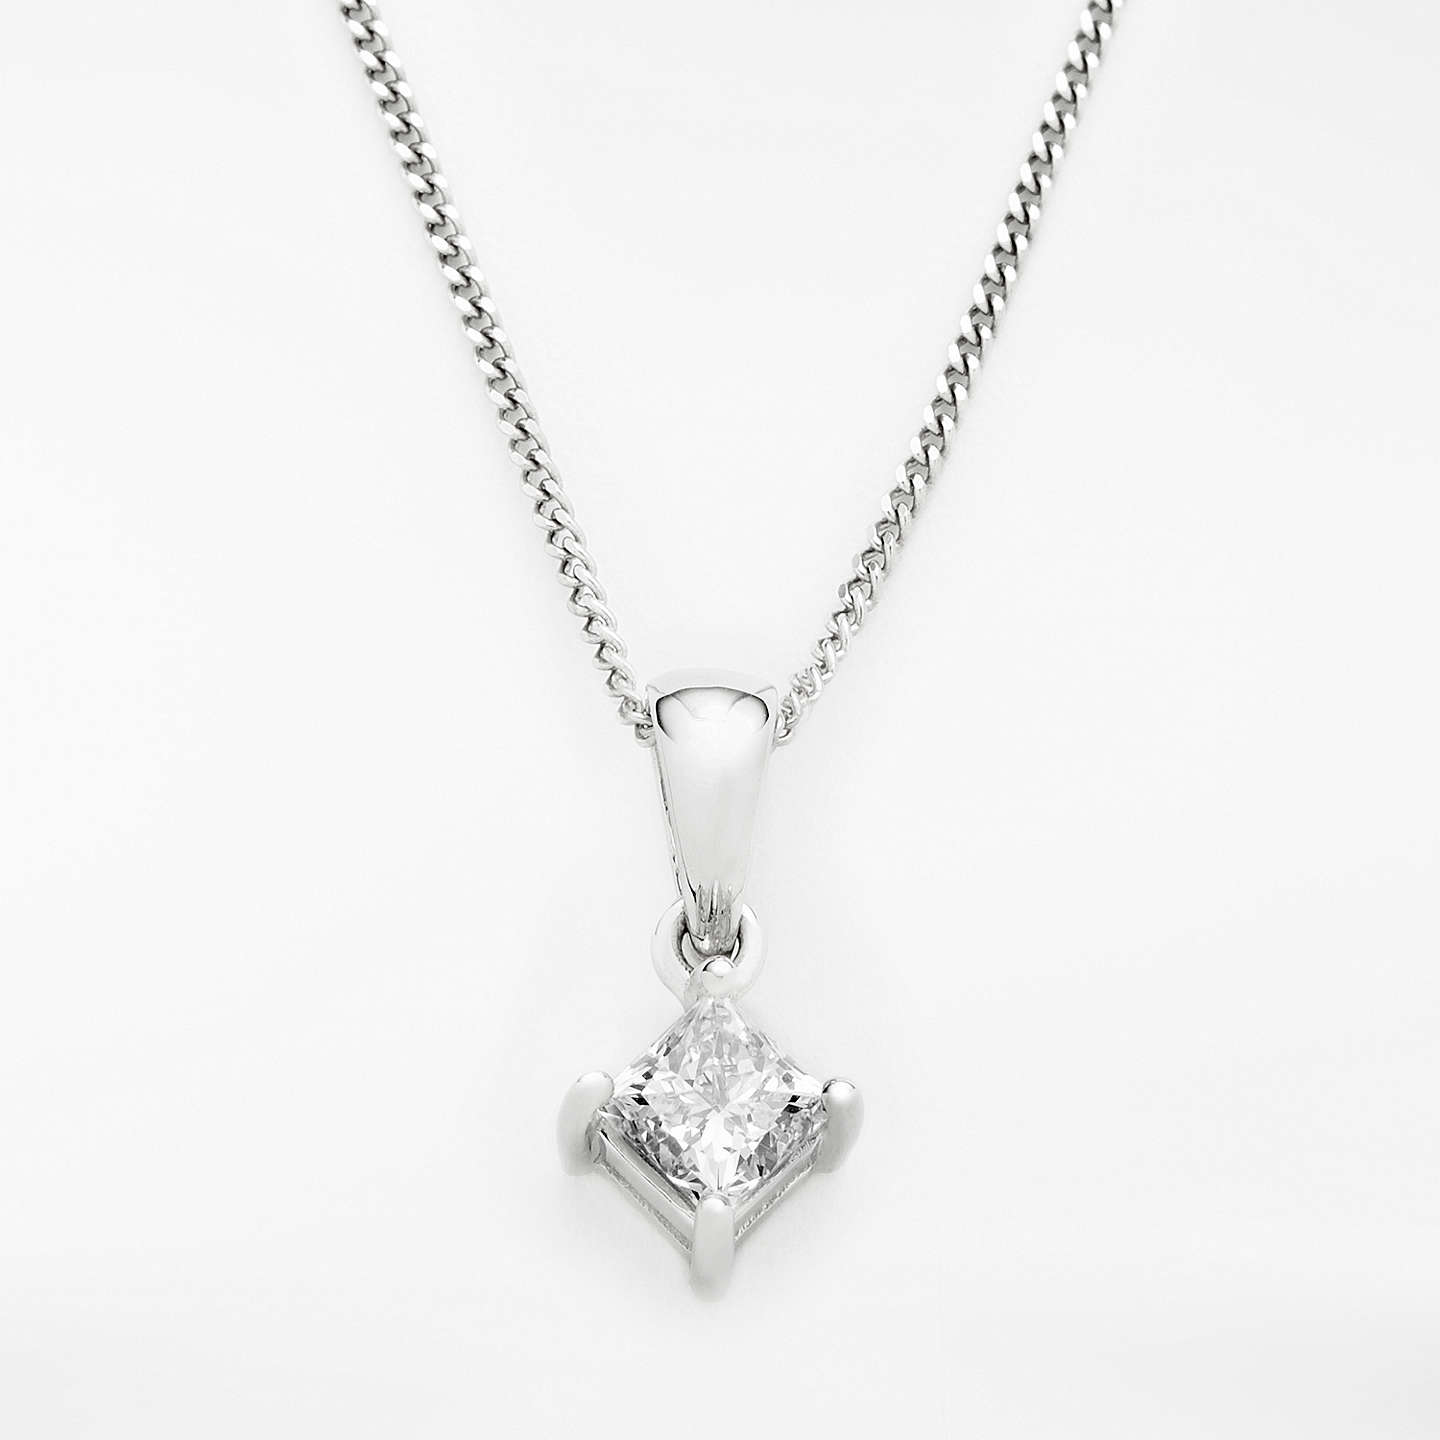 necklaces necklace state white pendants shop solitaire diamond gold charms